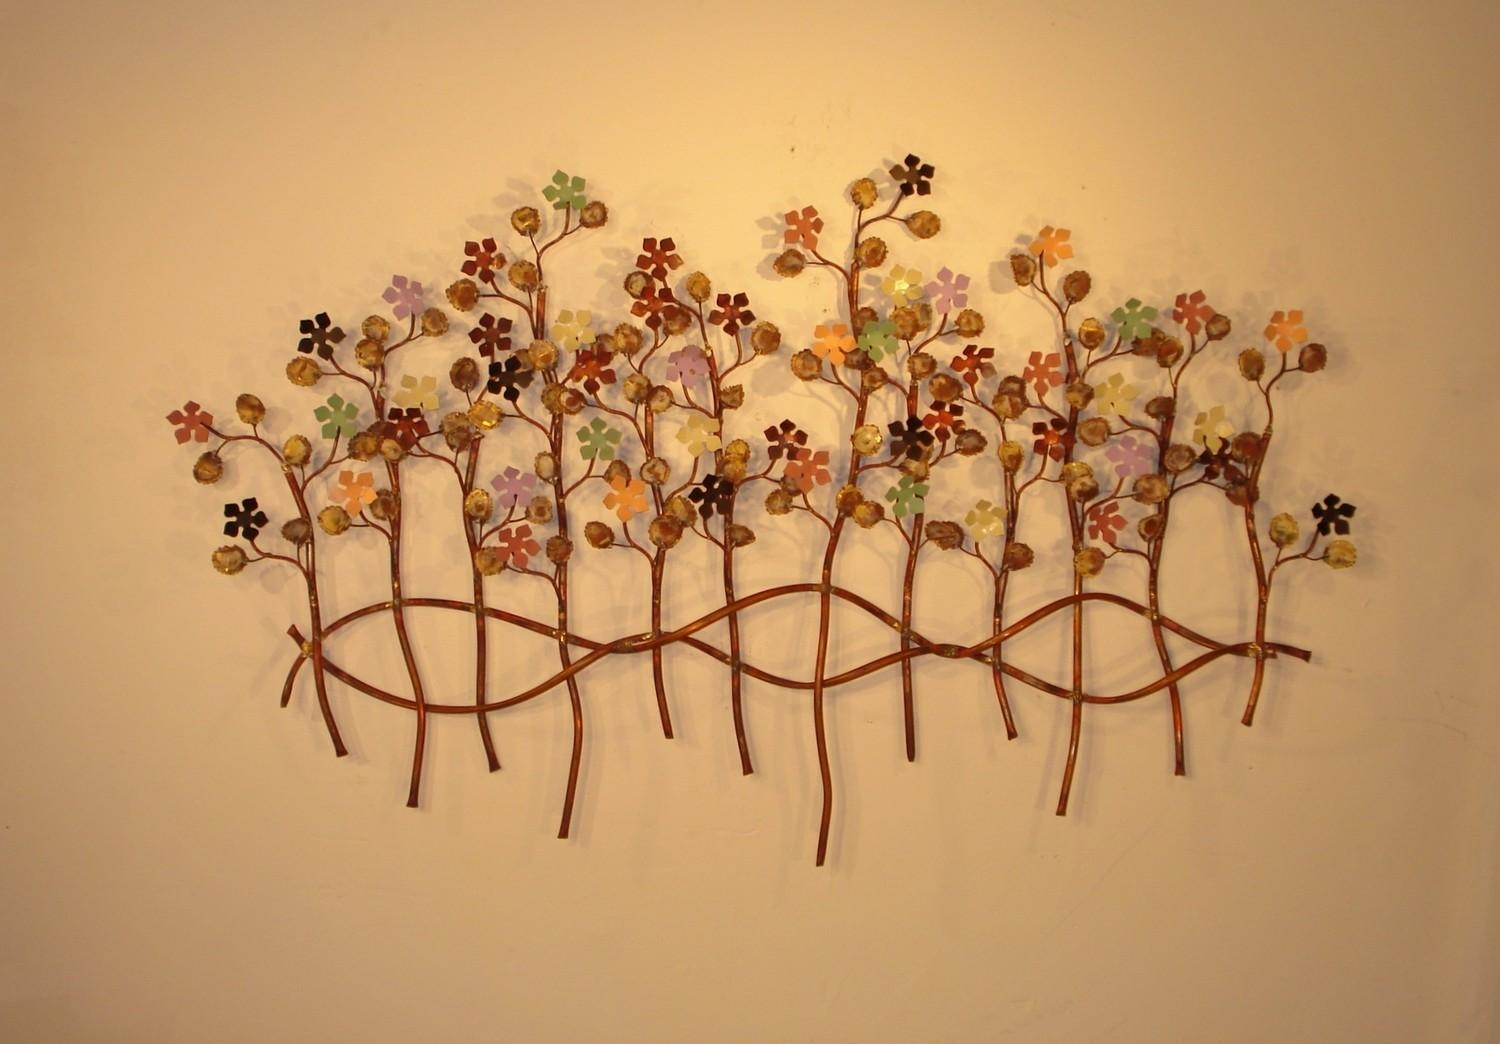 Botanical Metal Wall Decor, Sculptures And Art | Gurtan Designs Inside Botanical Metal Wall Art (Image 3 of 20)